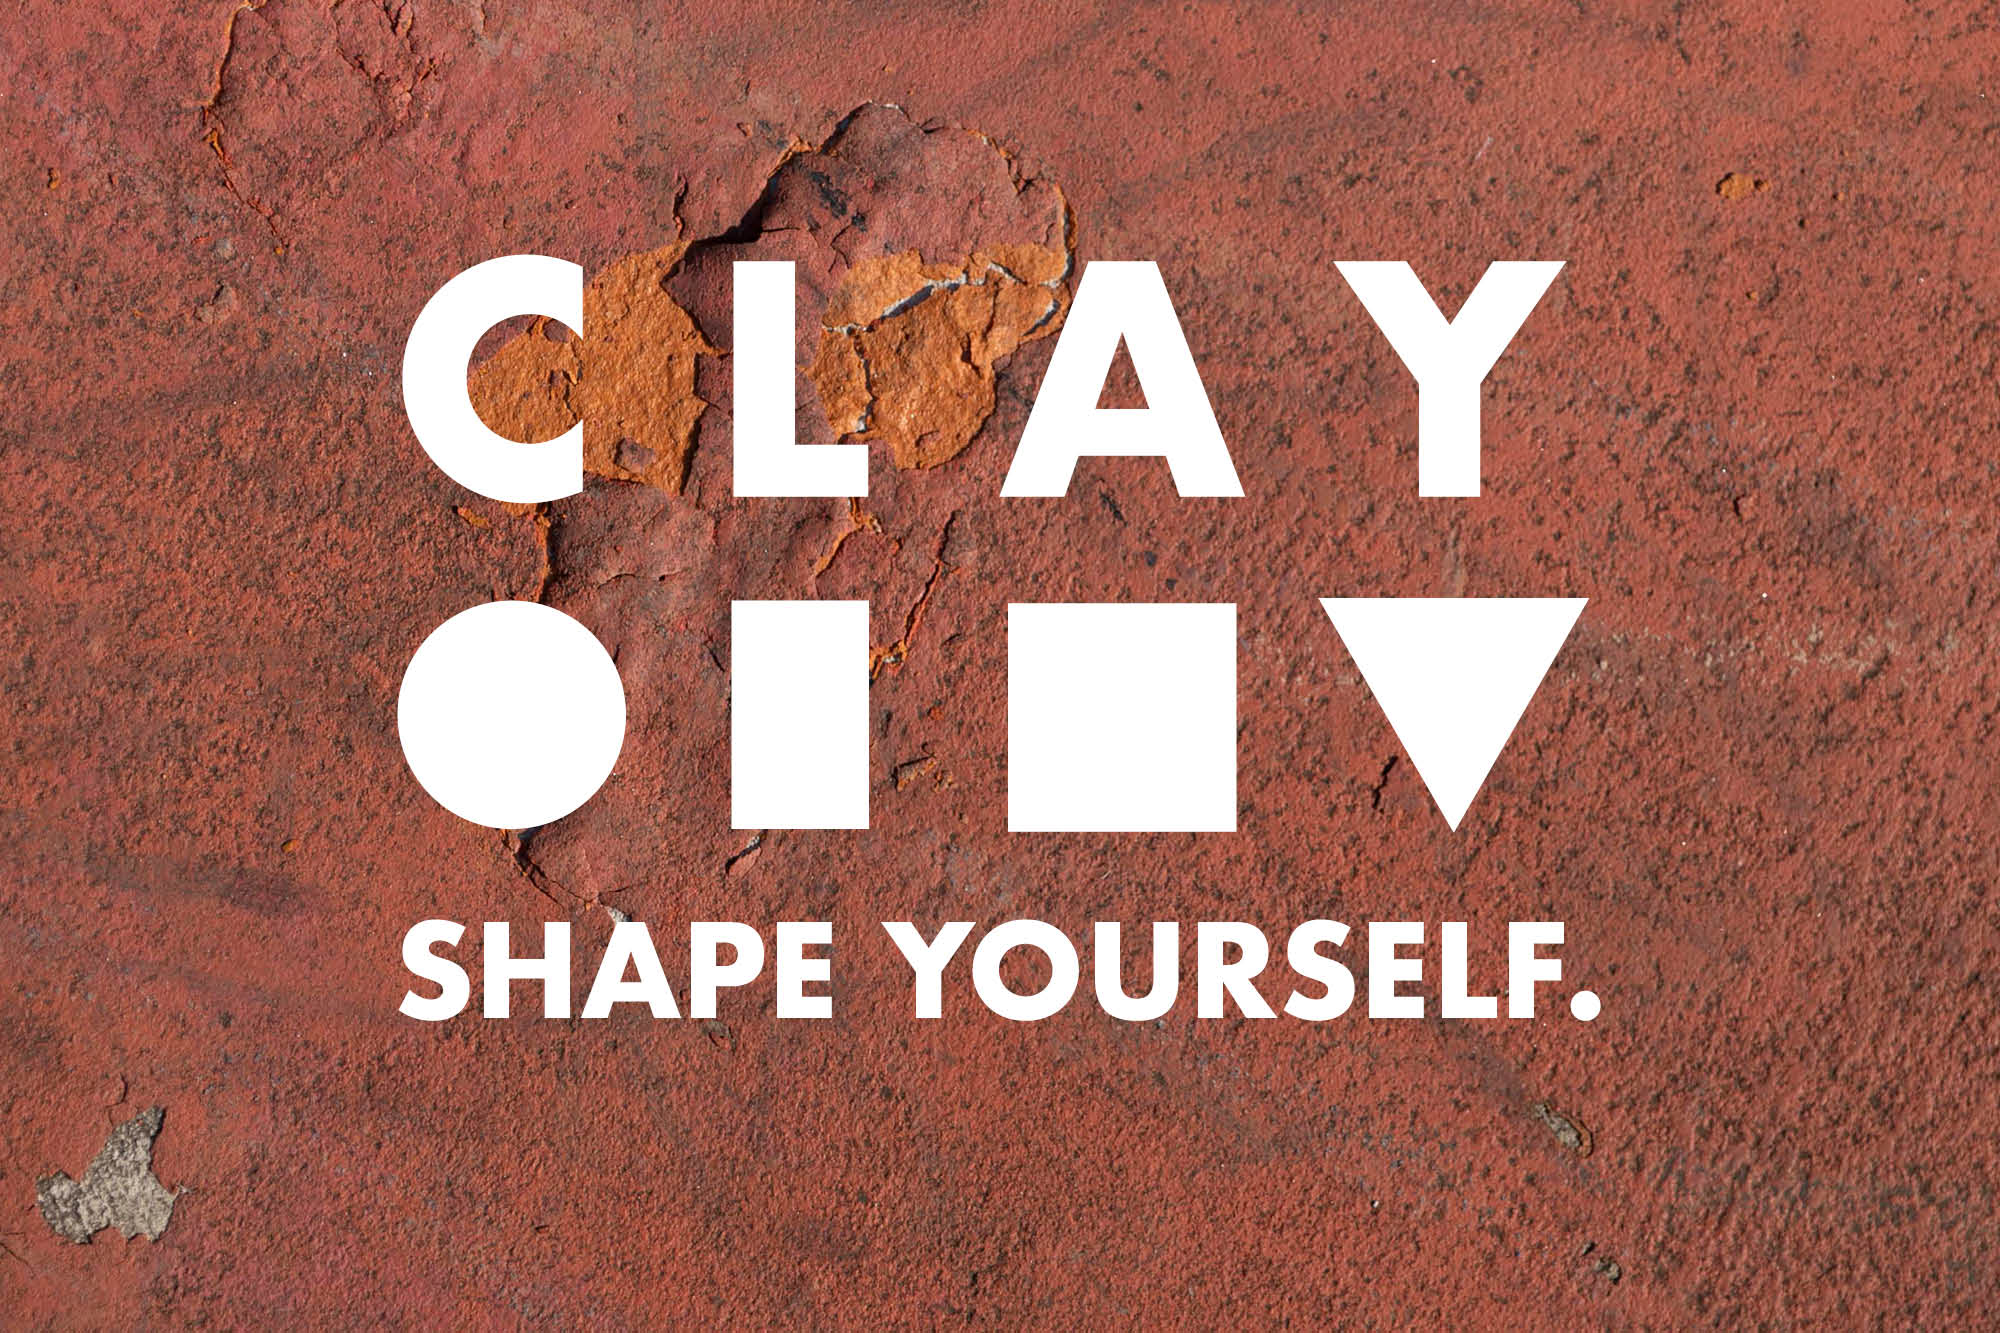 Shape yourself like Clay